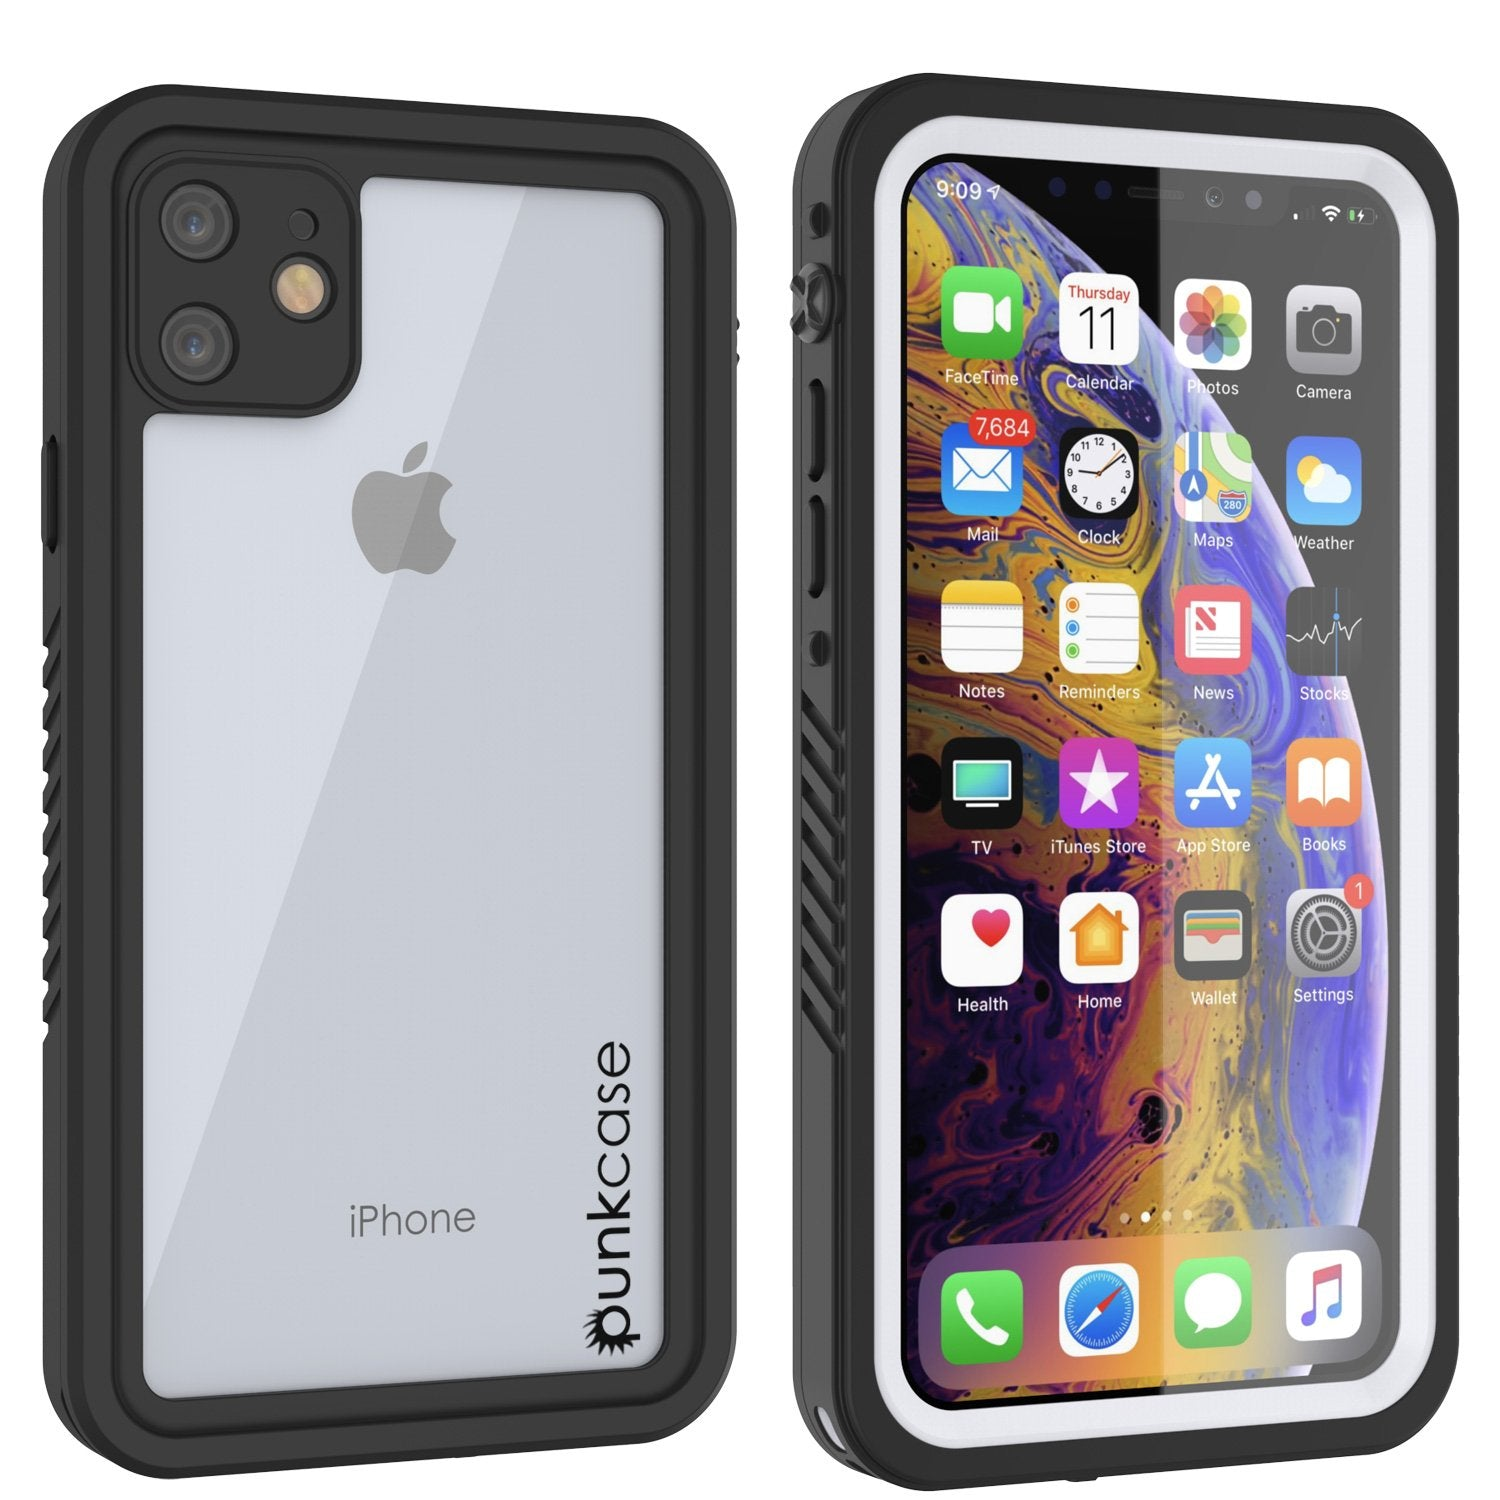 iPhone 11 Waterproof Case, Punkcase [Extreme Series] Armor Cover W/ Built In Screen Protector [White]